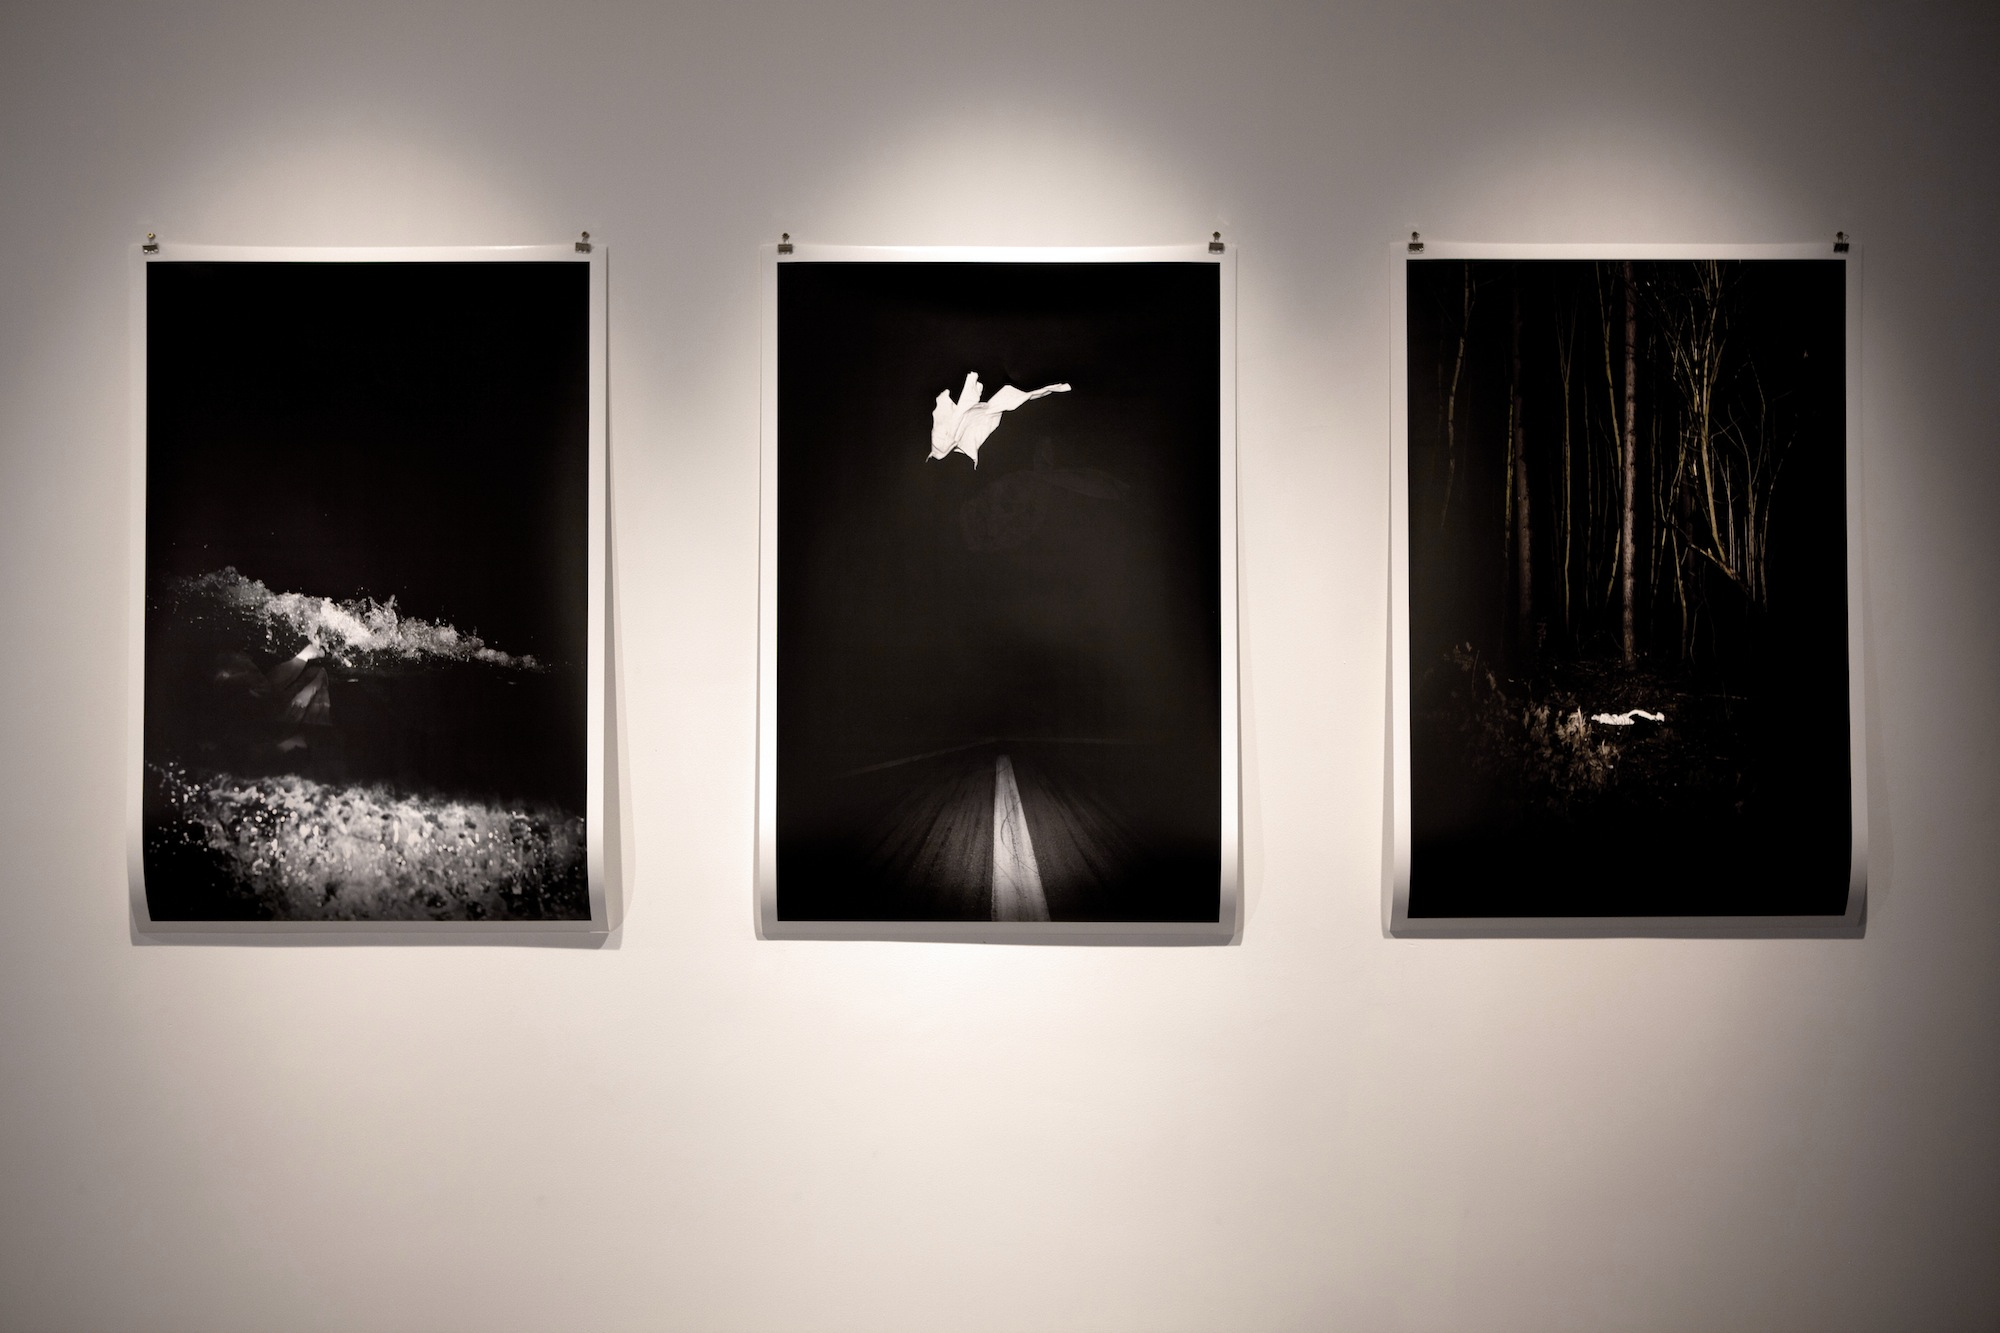 Niklas Goldbach  Means of Escape 2012 Digital pigment prints on baryt paper  120 x 80 cm (each) Edition 3 + 2 AP